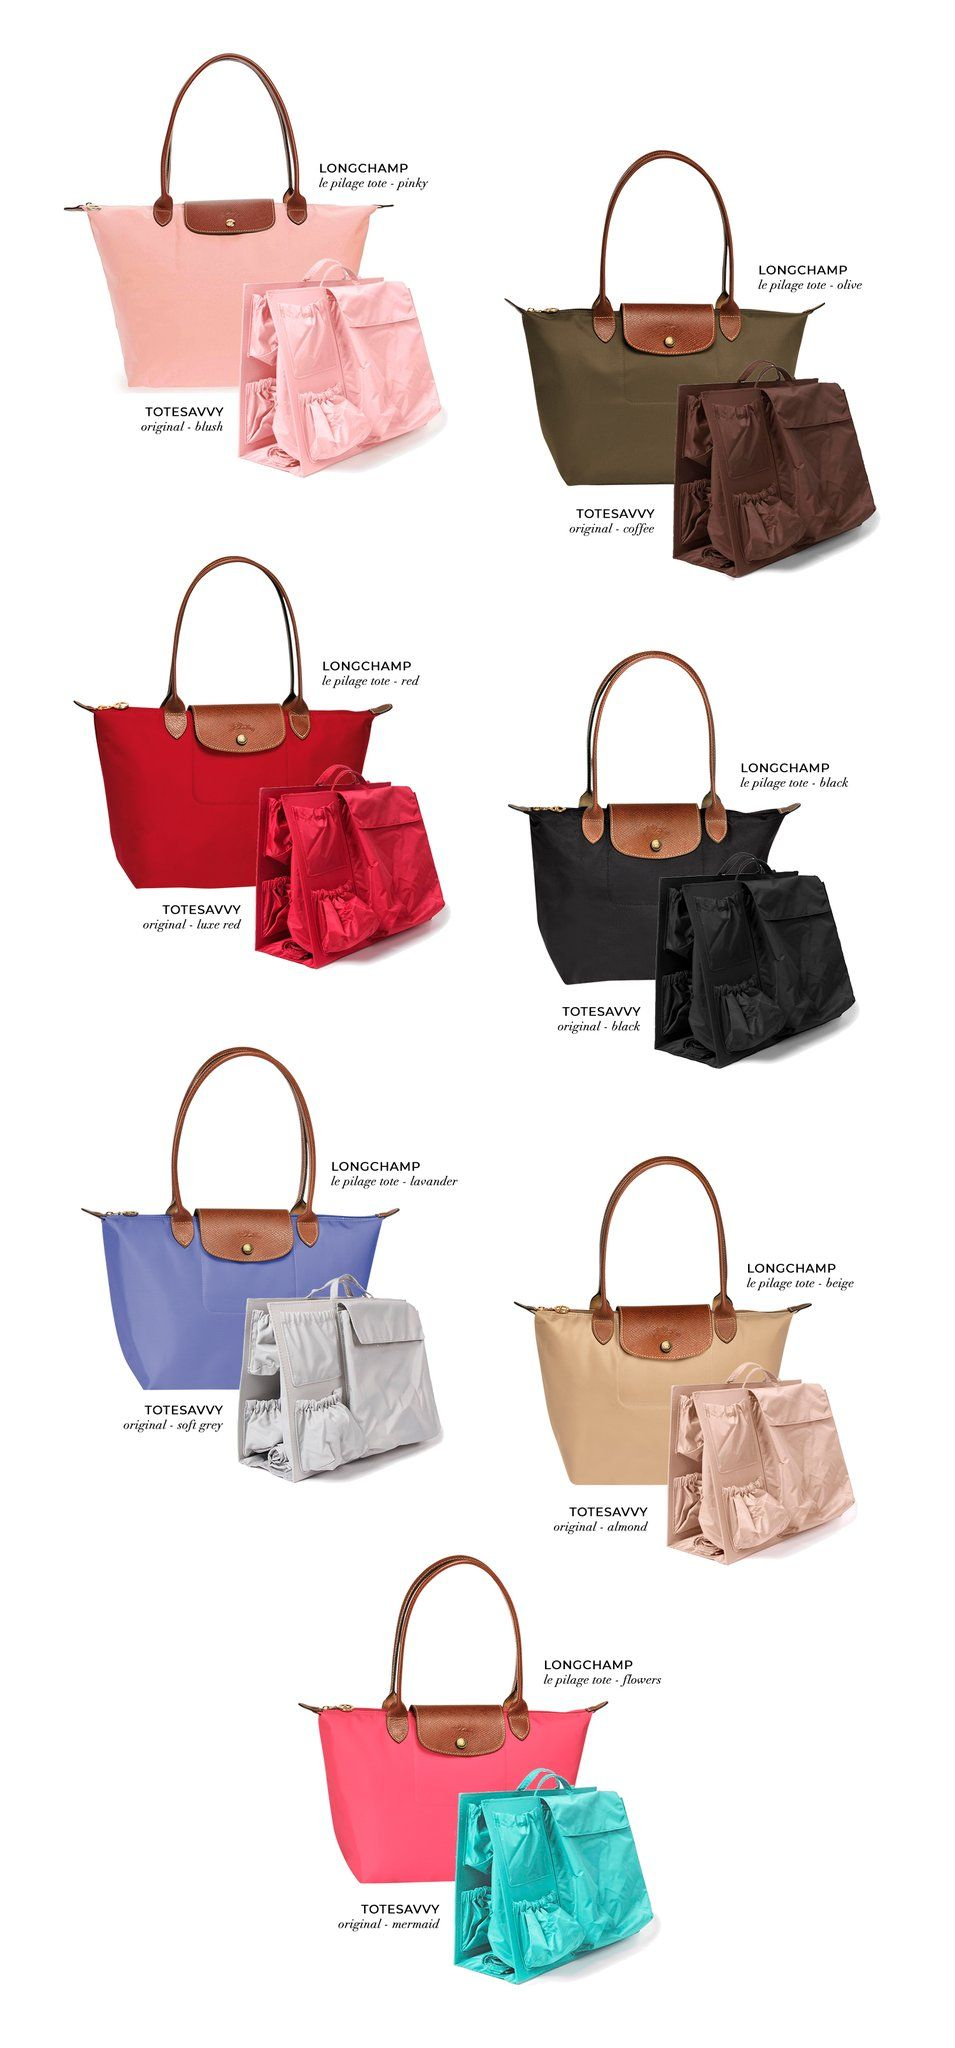 Longchamp Le Pliage as a Diaper Bag – ToteSavvy 663e52d6e3b37